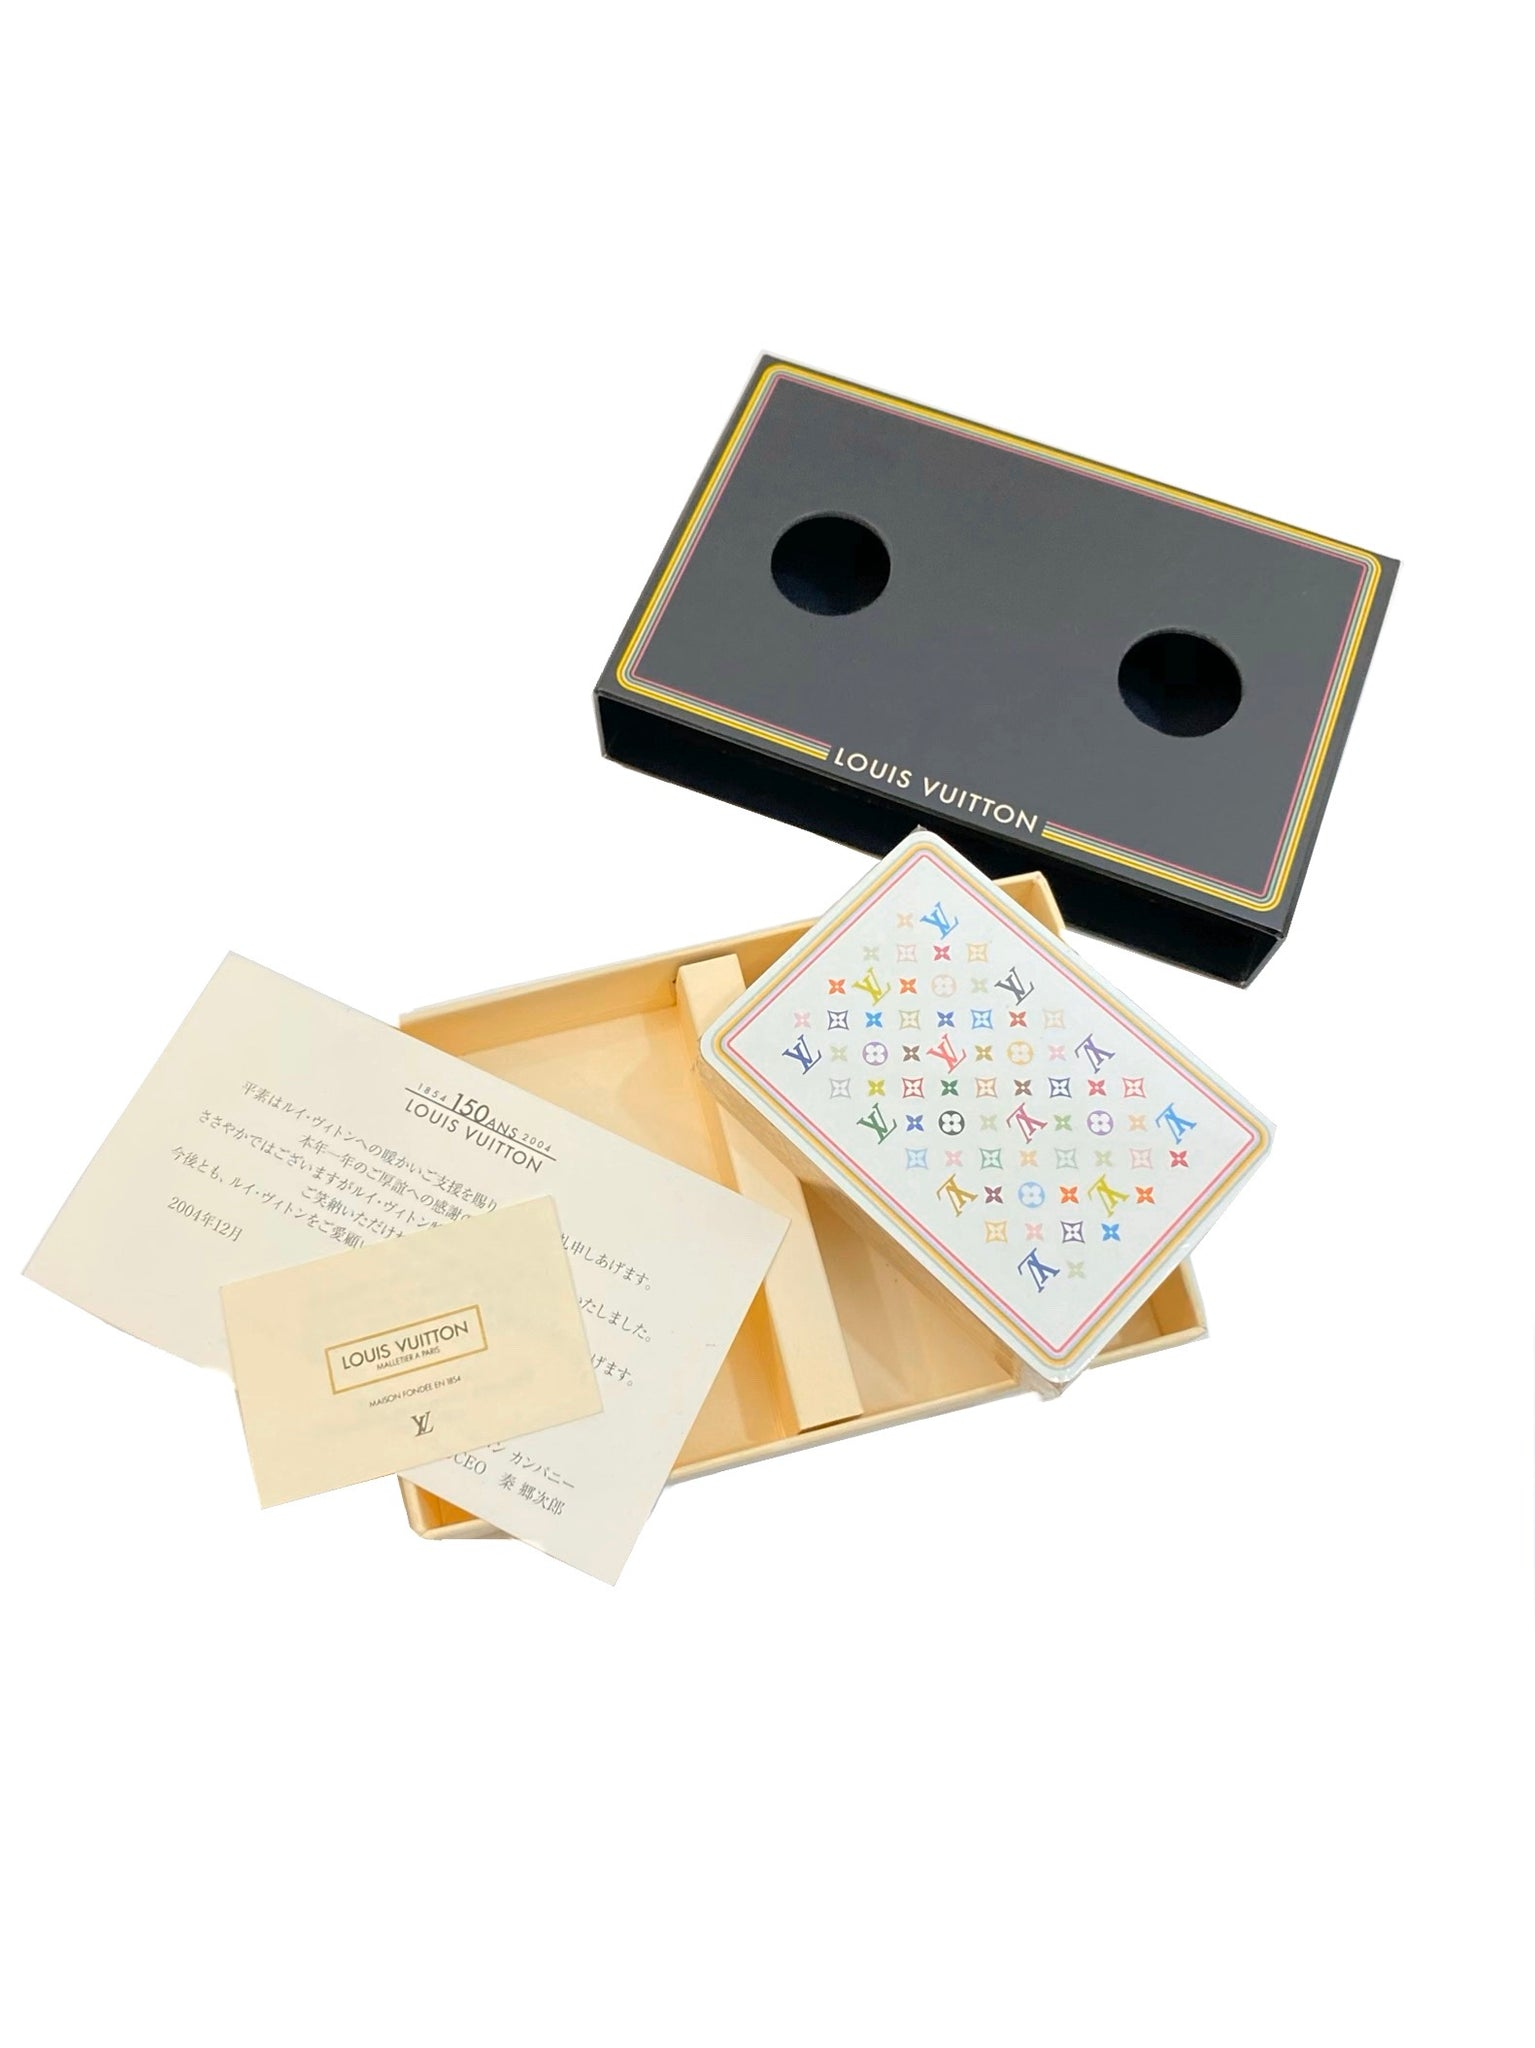 Louis Vuitton x Takashi Murakami Set of Poker Cards